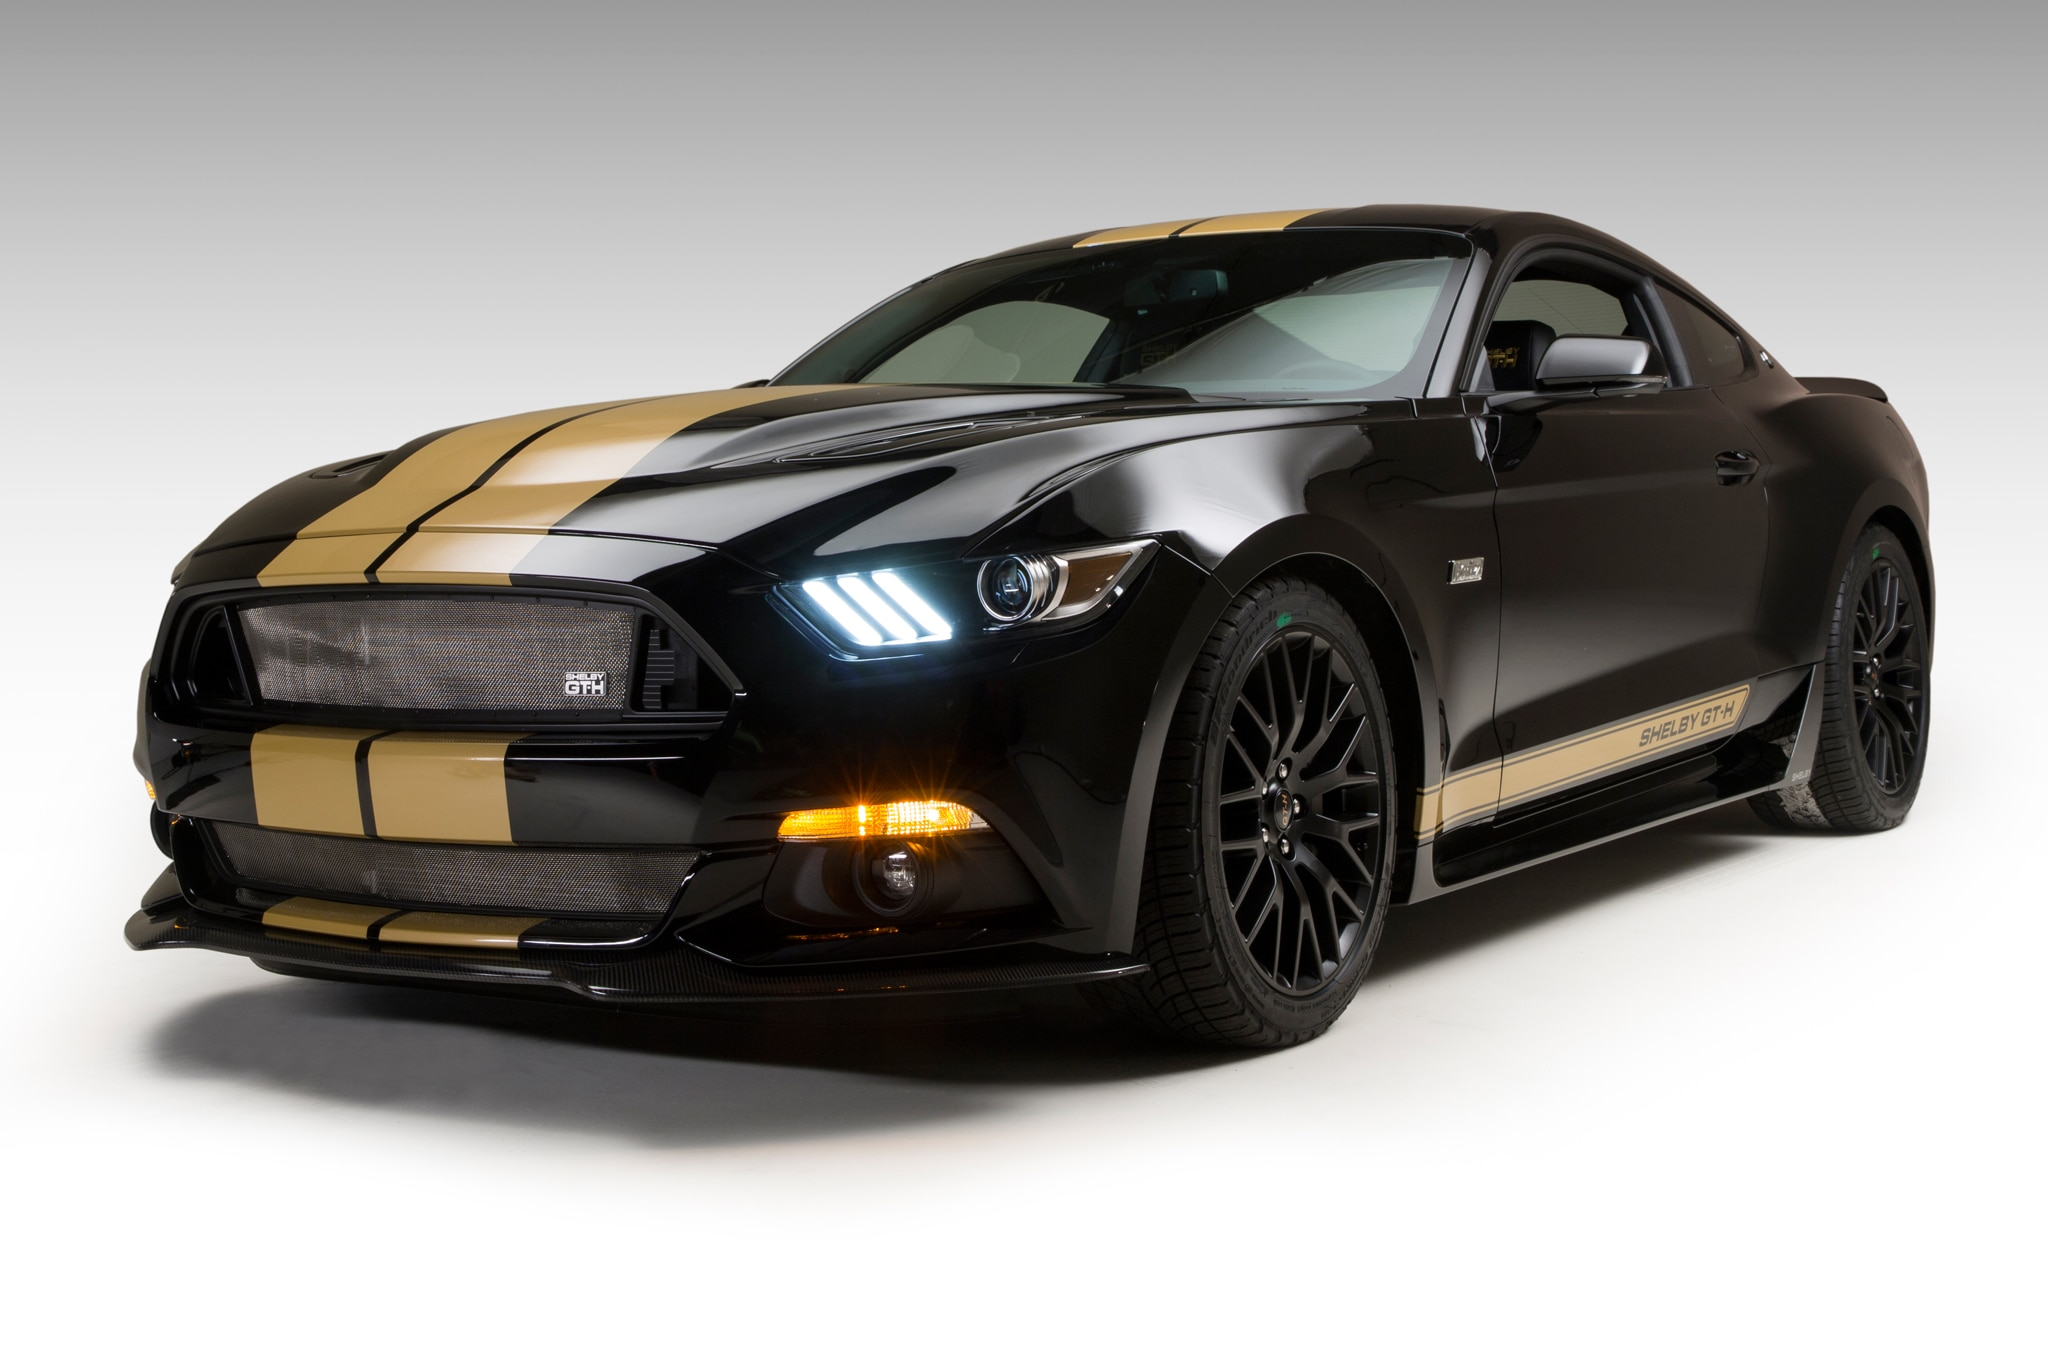 http://st.automobilemag.com/uploads/sites/11/2016/03/2016-Ford-Shelby-GT-H-front-three-quarter-view.jpg